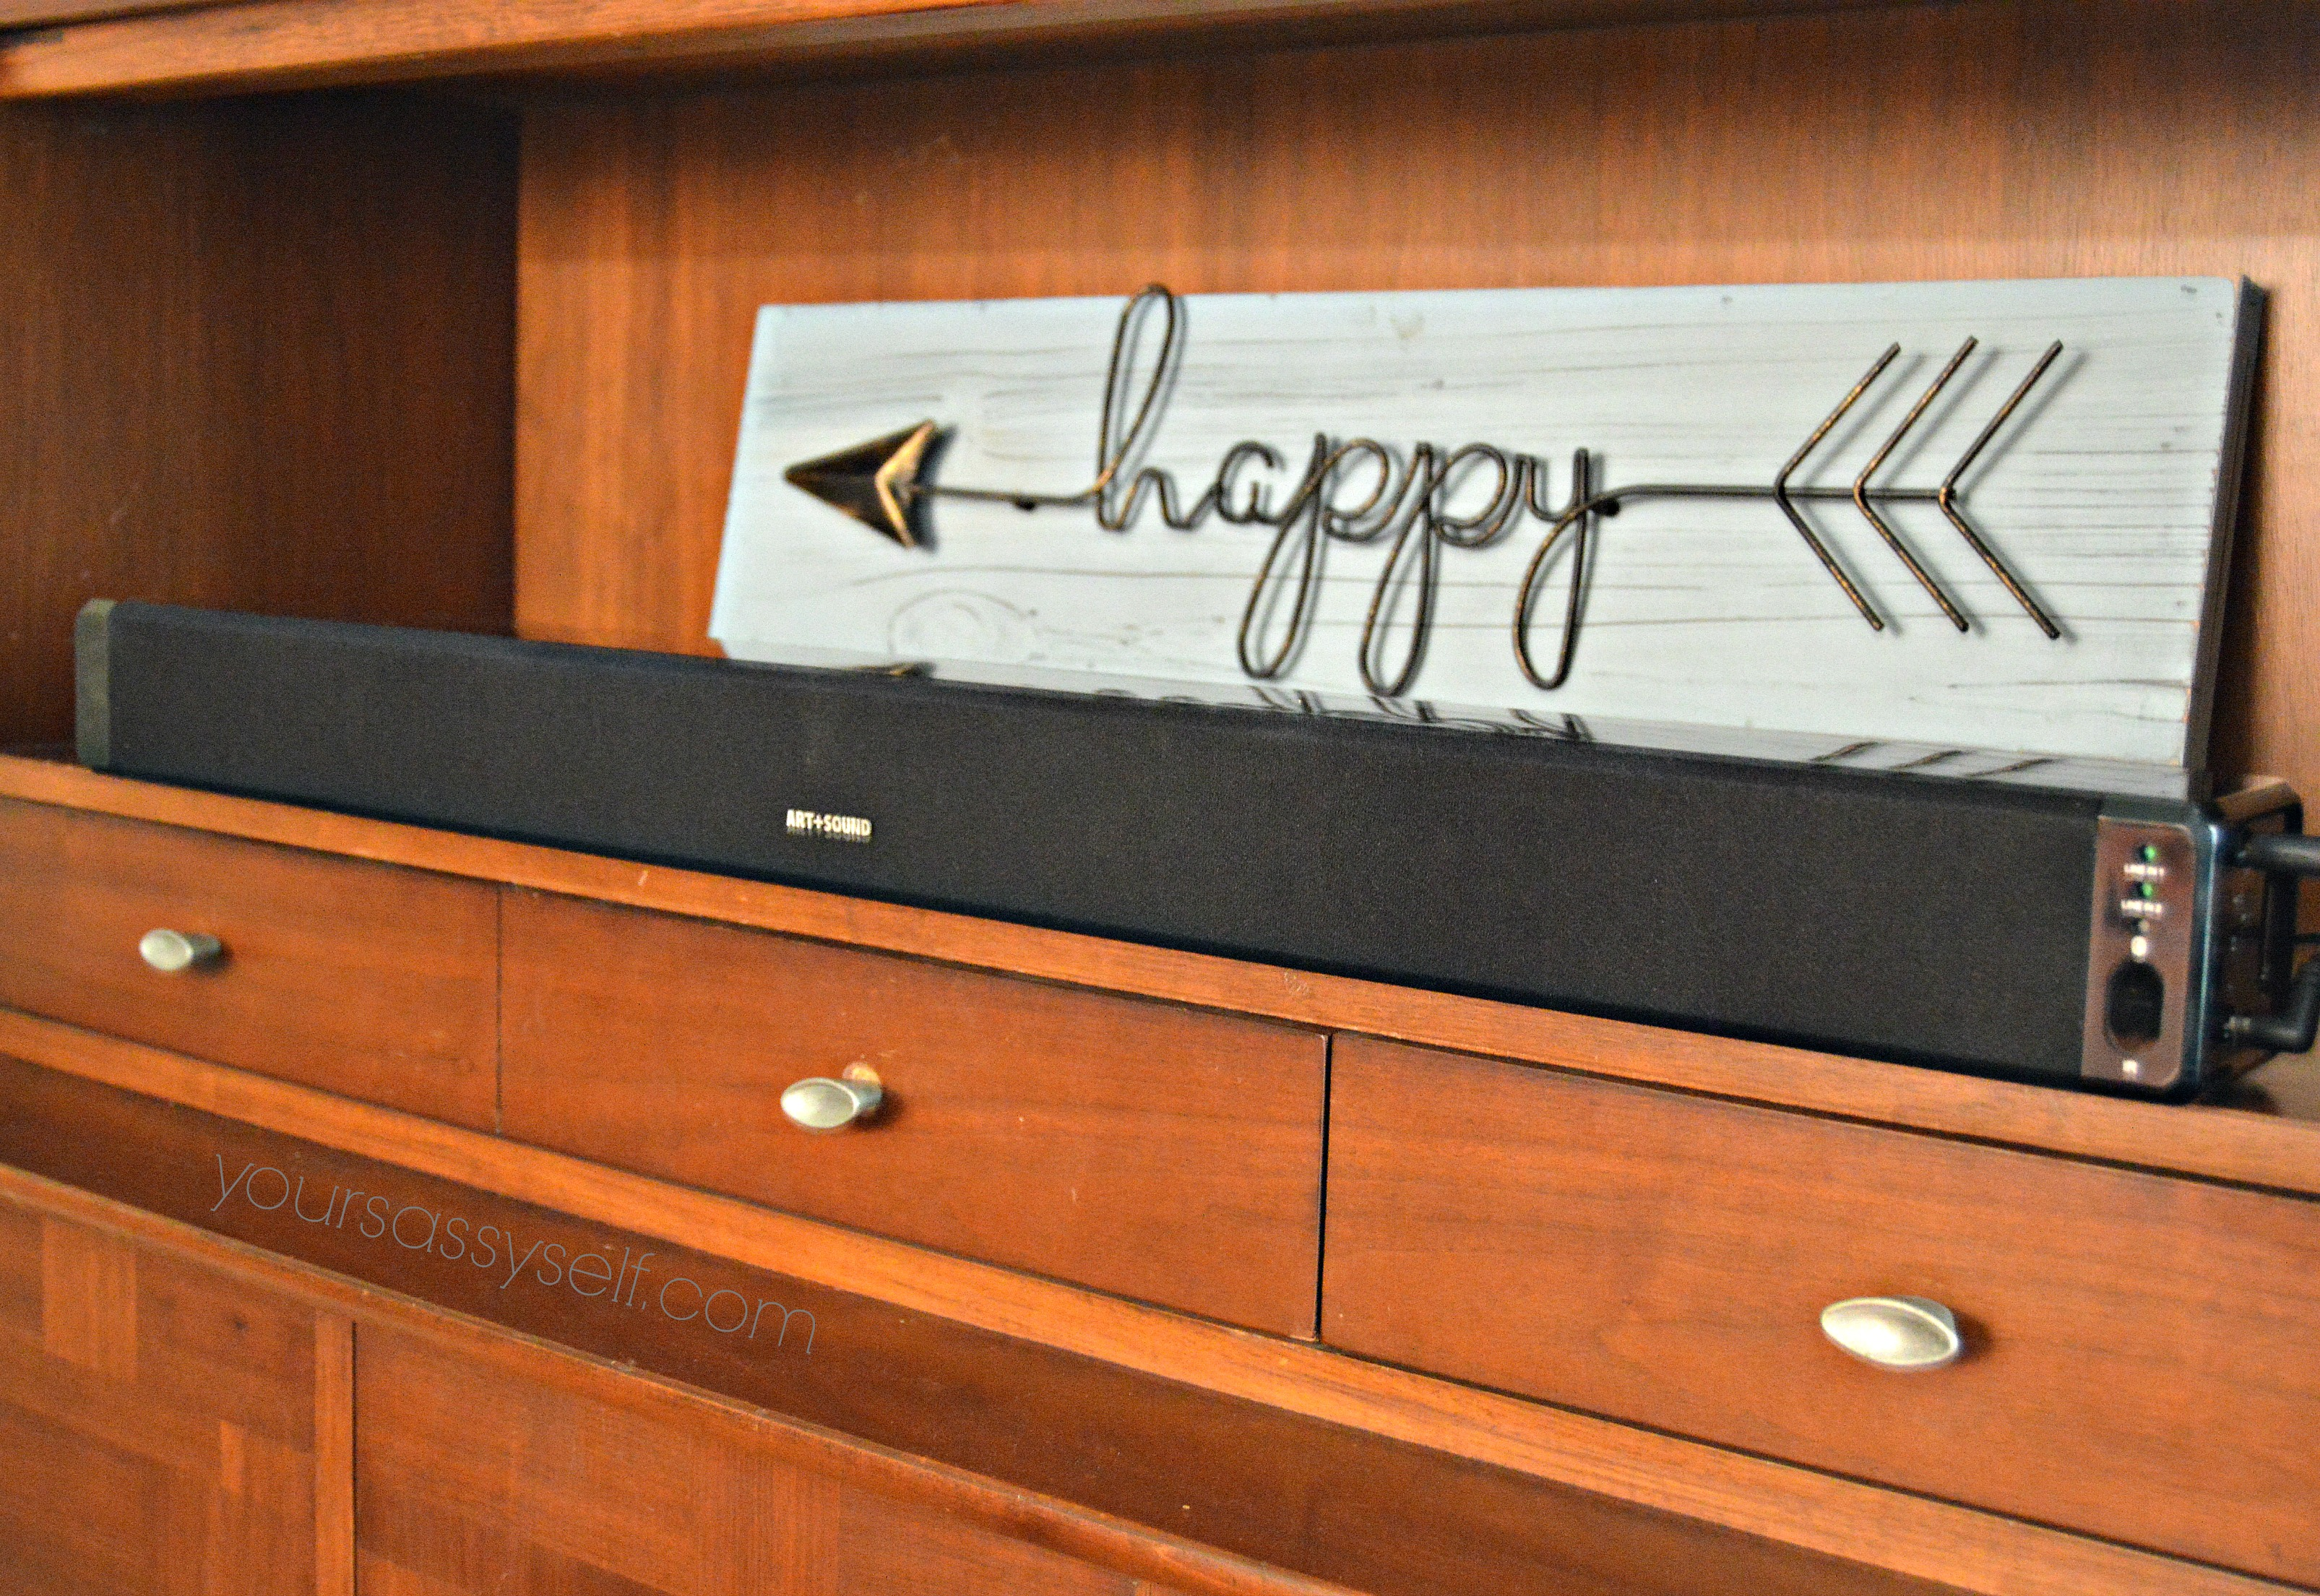 Happy Arrow Decor over Sound Bar - yoursassyself.com